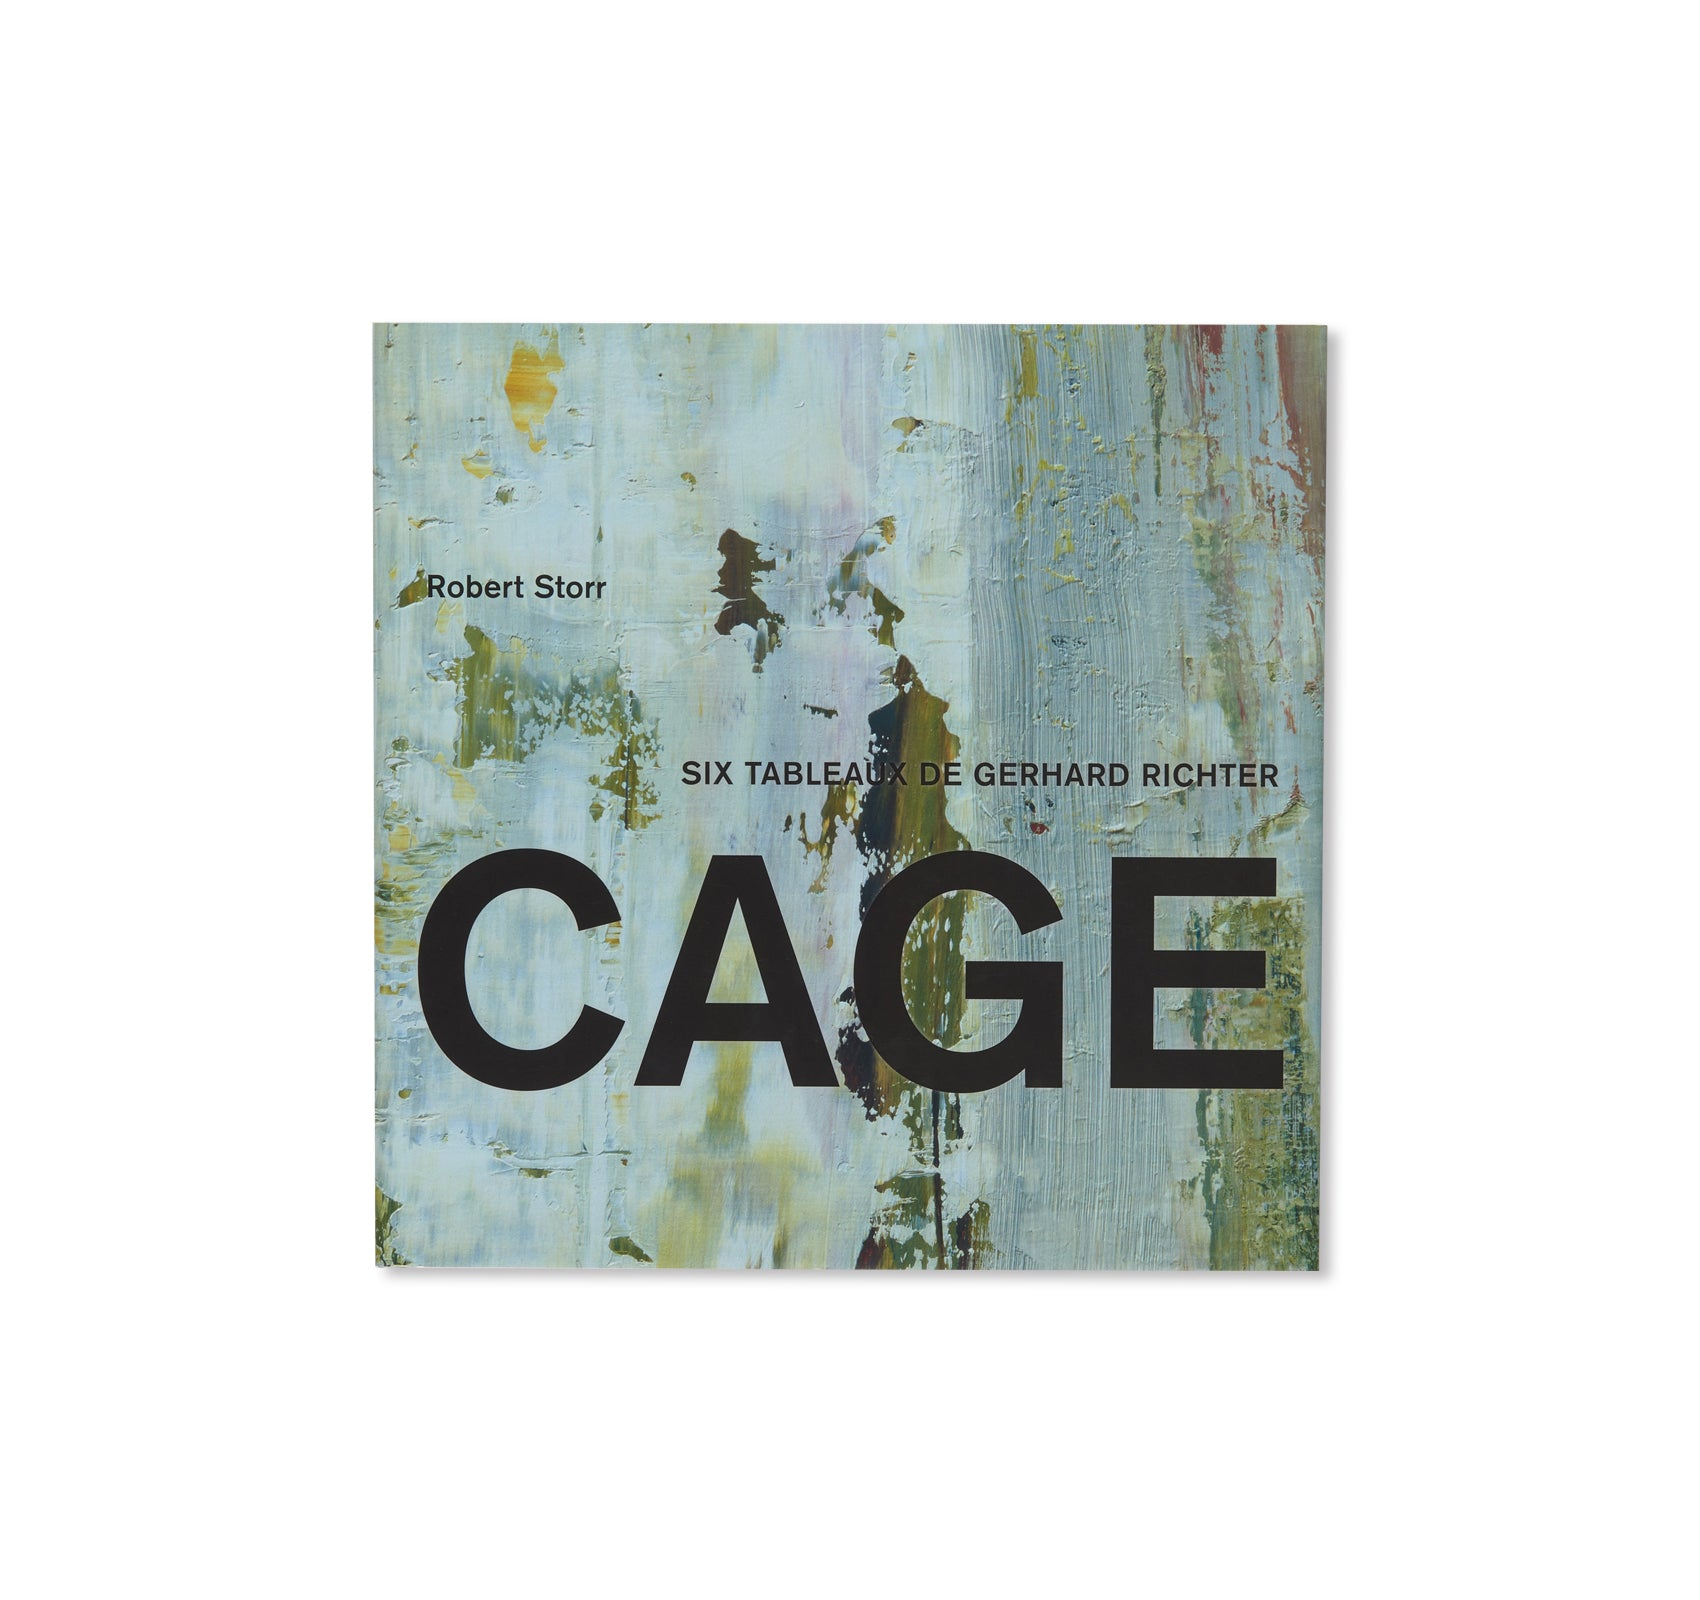 CAGE by Gerhard Richter